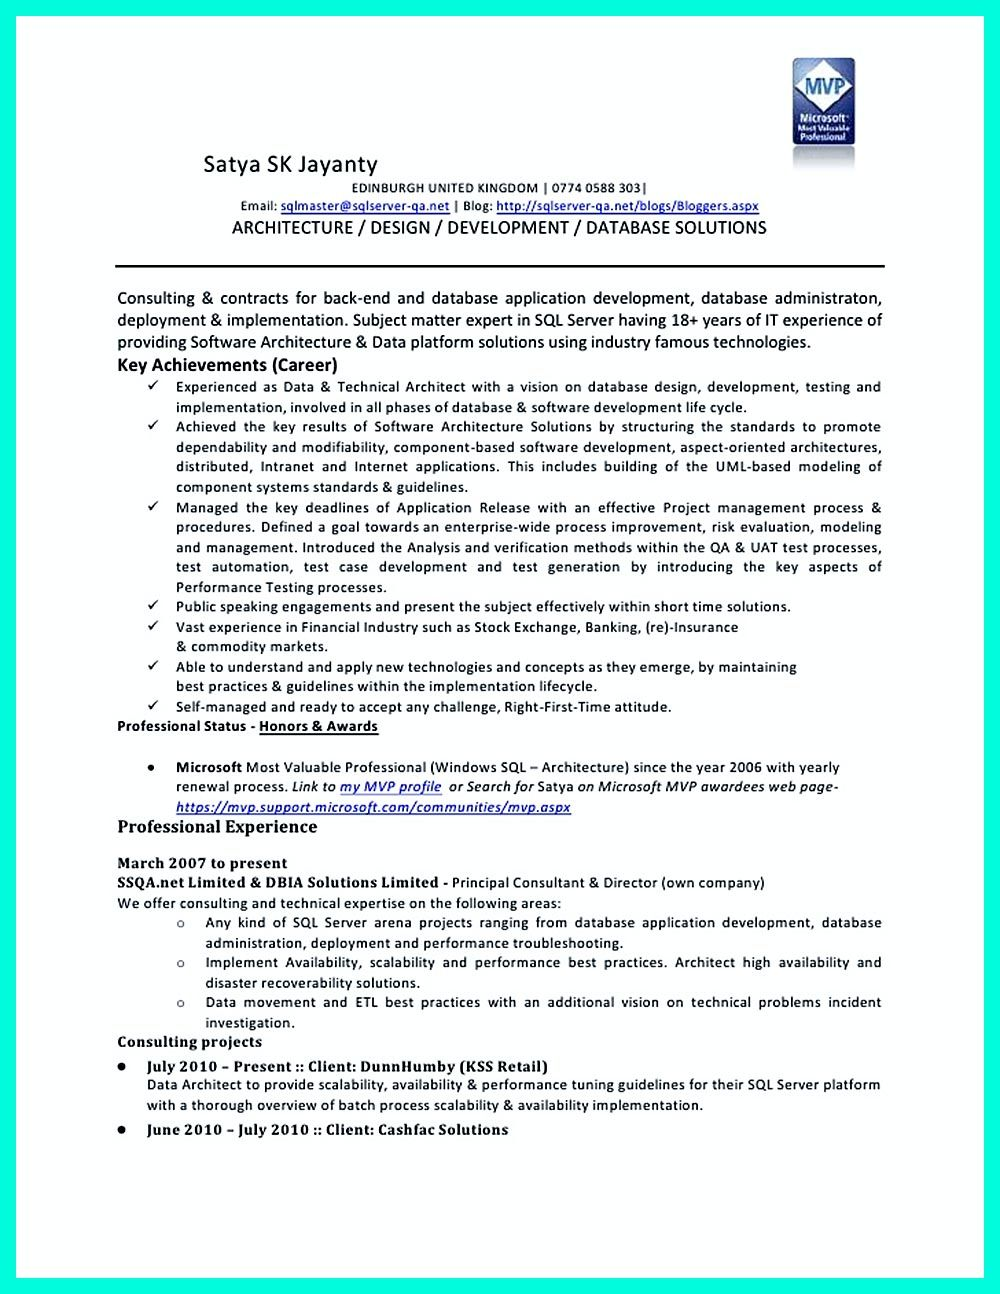 In The Data Architect Resume One Must Describe The Professional Profile Of The Applicant As Well As His Educational Background Skills And Experience Data I